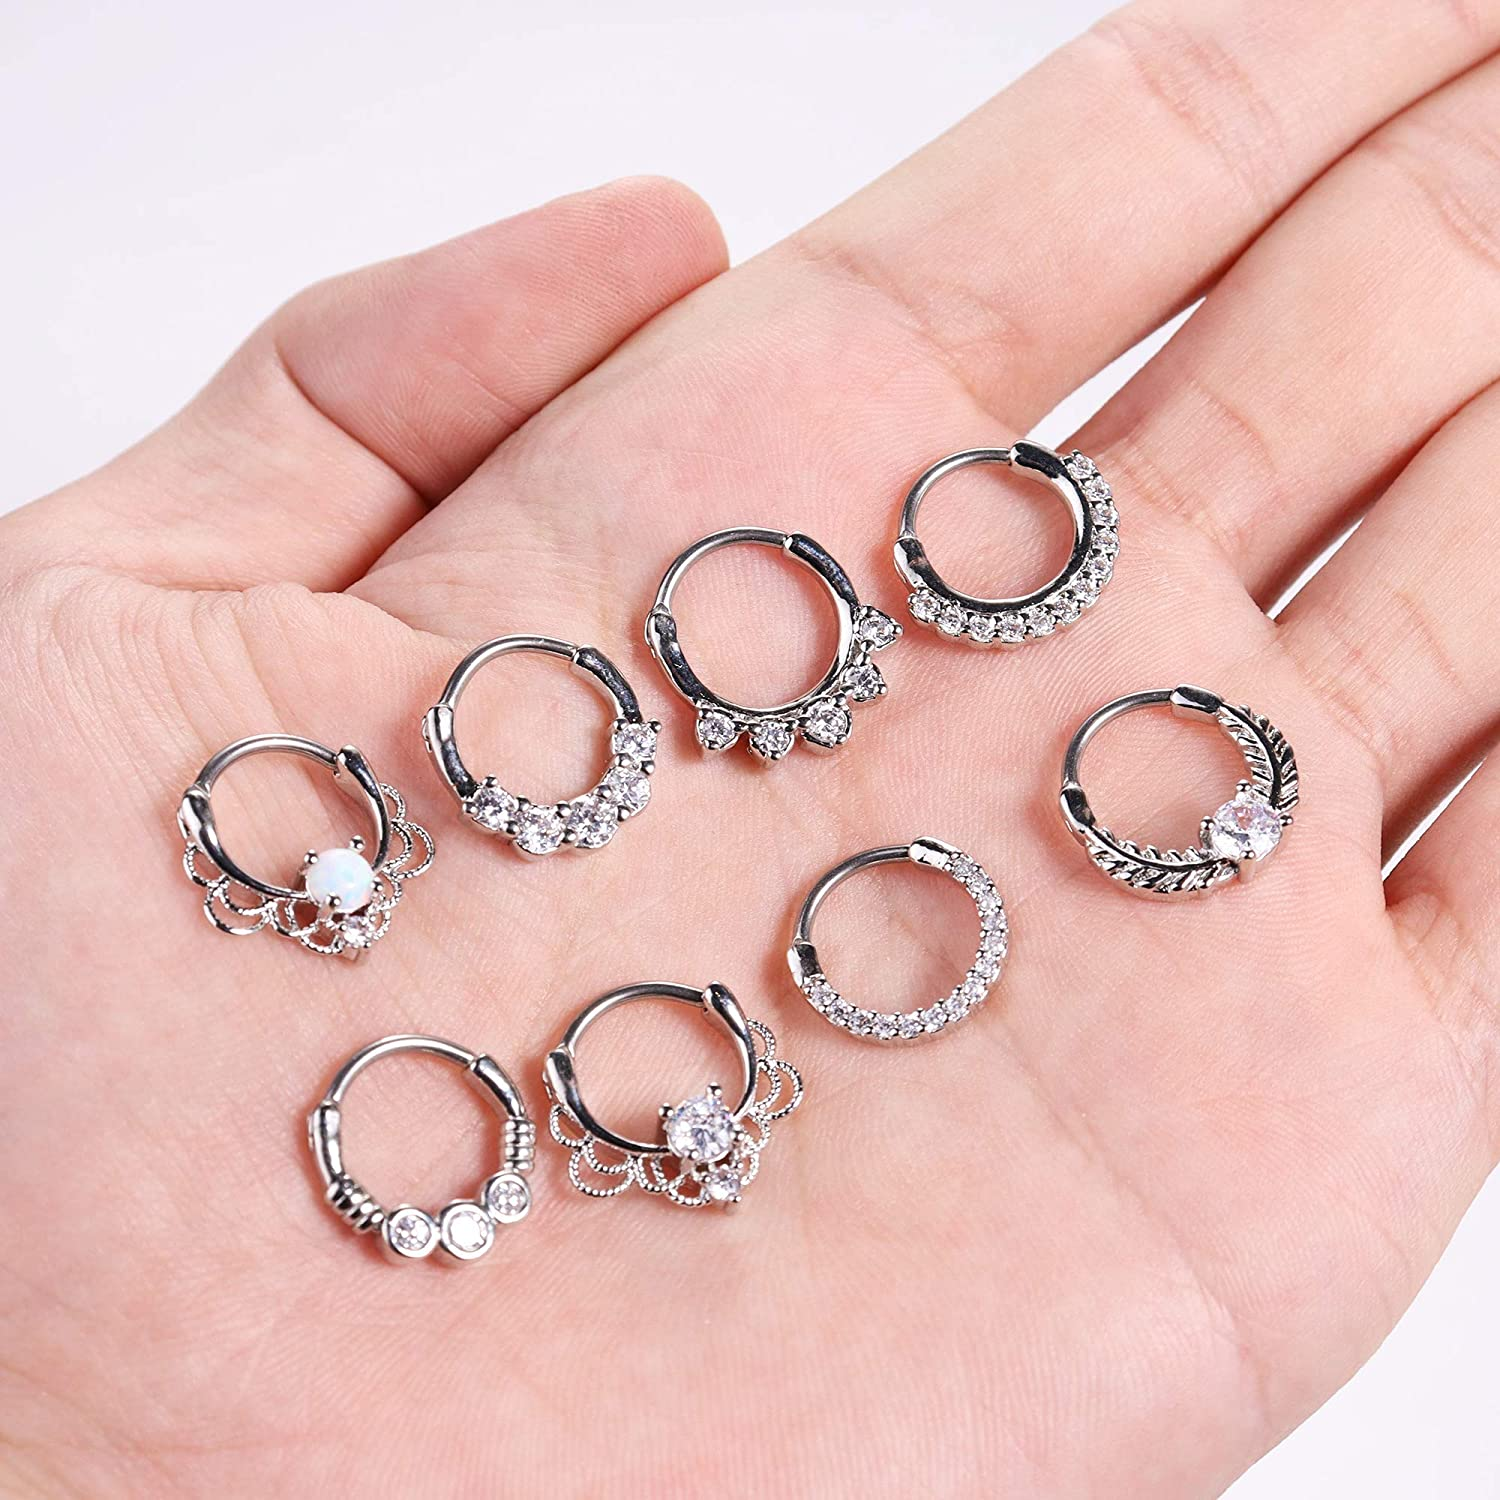 Thunaraz 8Pcs 16G Septum Clicker Ring Stainless Steel CZ Opal Cartilage Helix Tragus Hoop Daith Earrings Nose Rings Hoop Hinged Segment Clicker Ring Piercing Jewelry 10MM